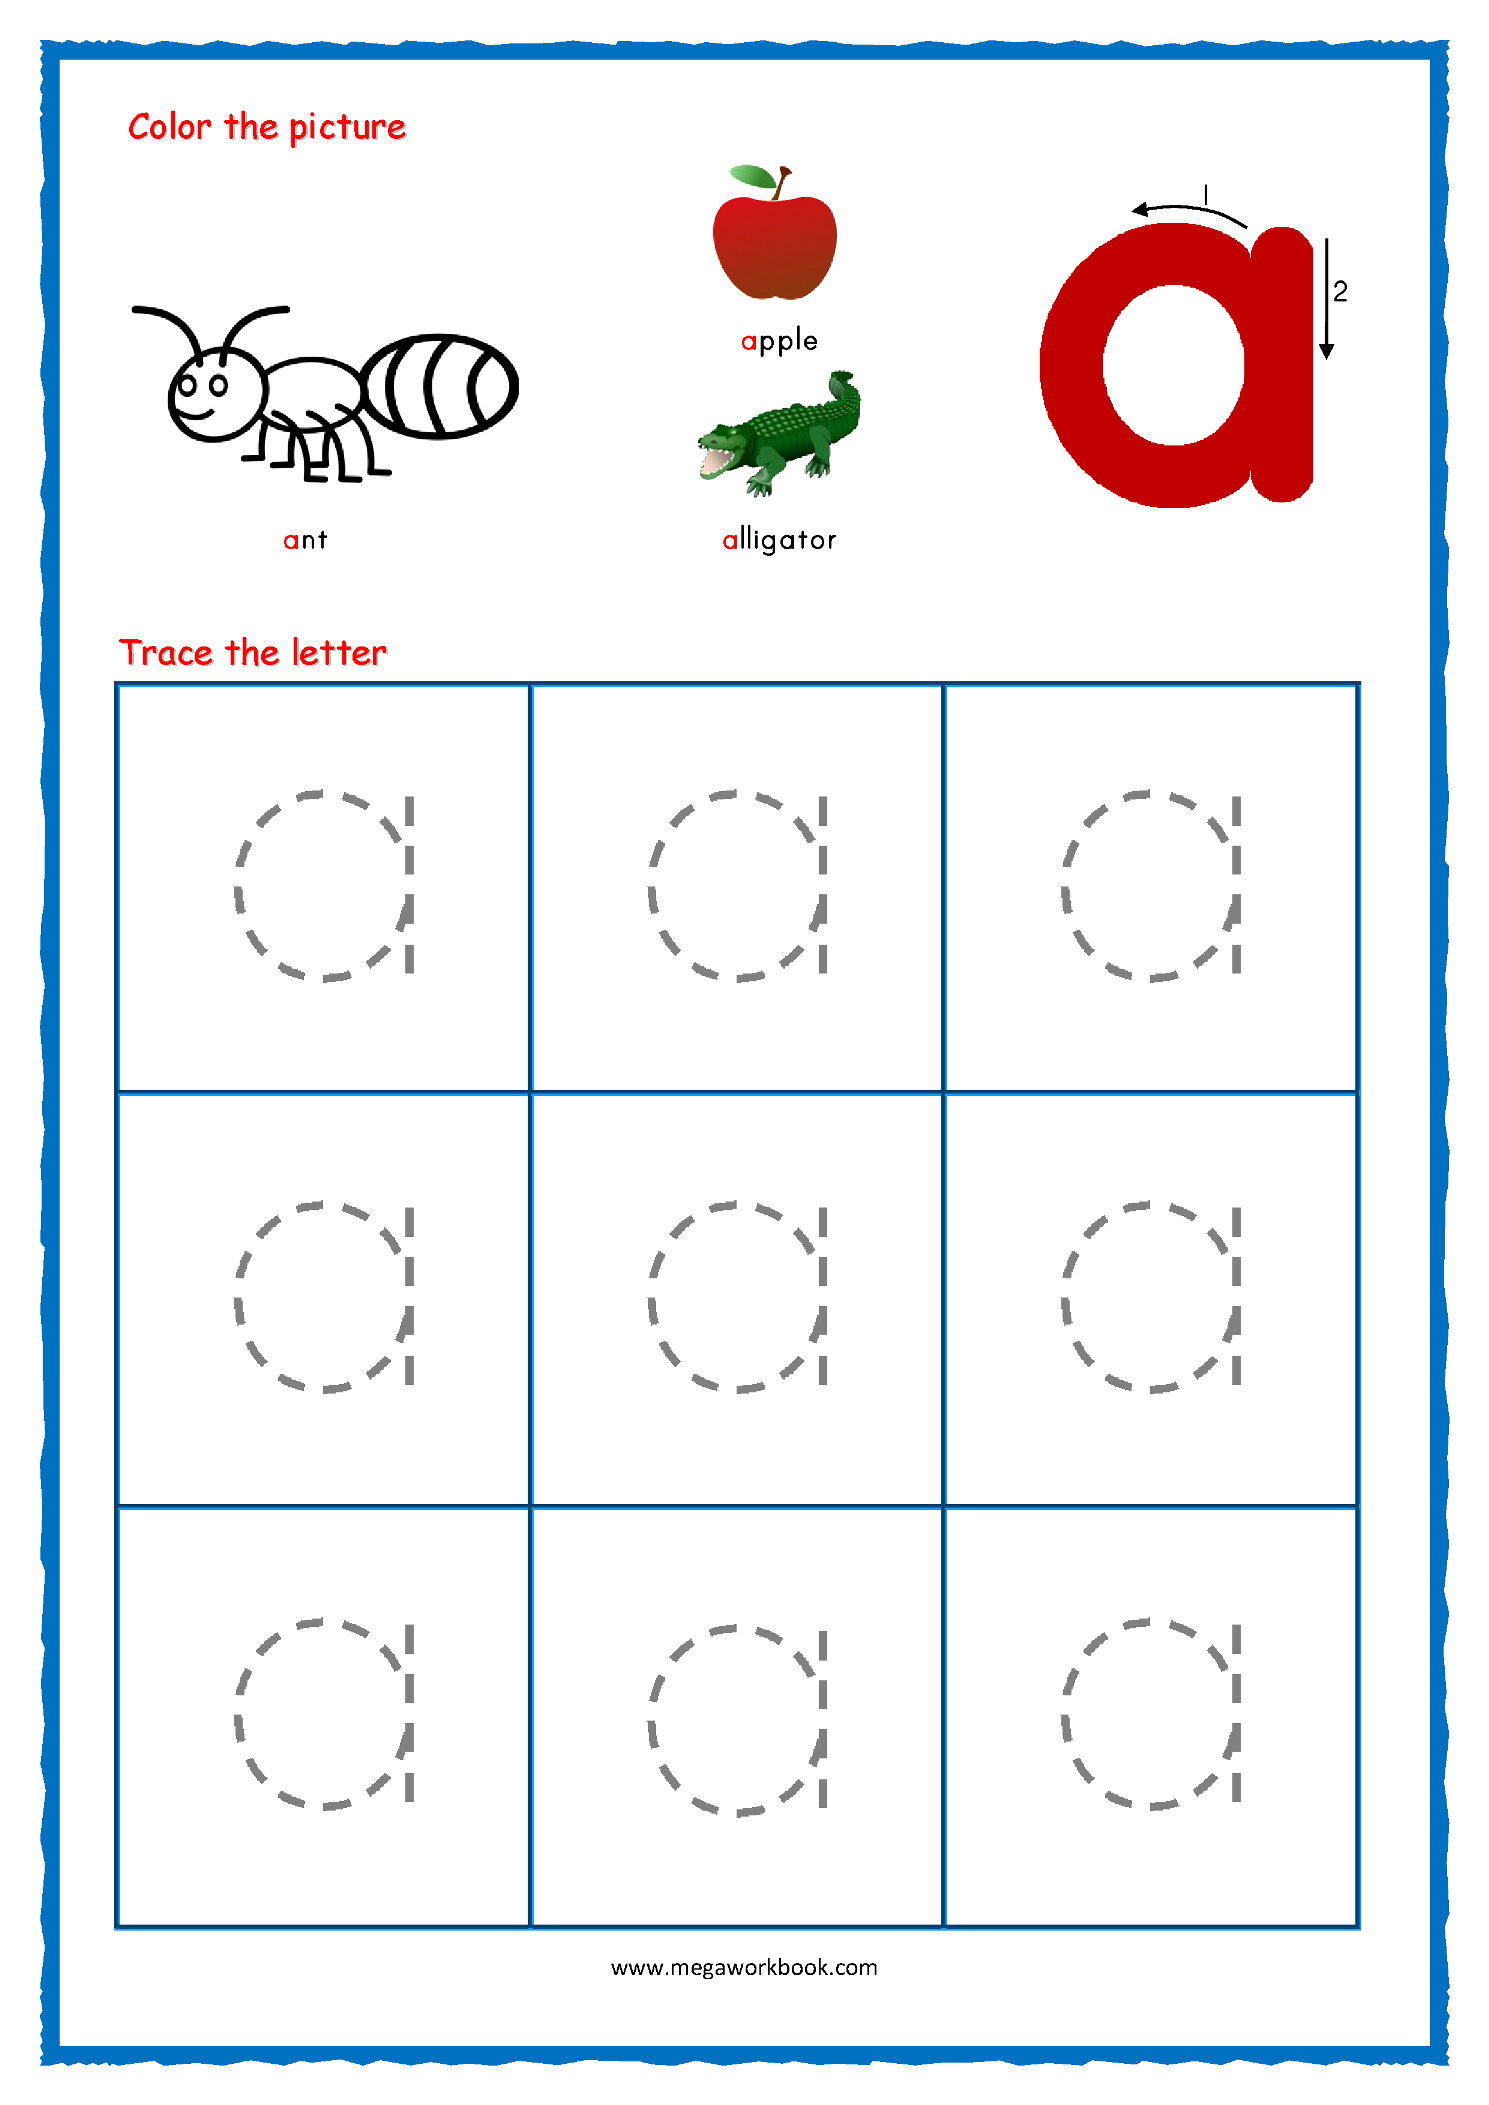 Coloring Book : Printableter Tracing Sheets For Preschoolers pertaining to Small Letters Tracing Sheets